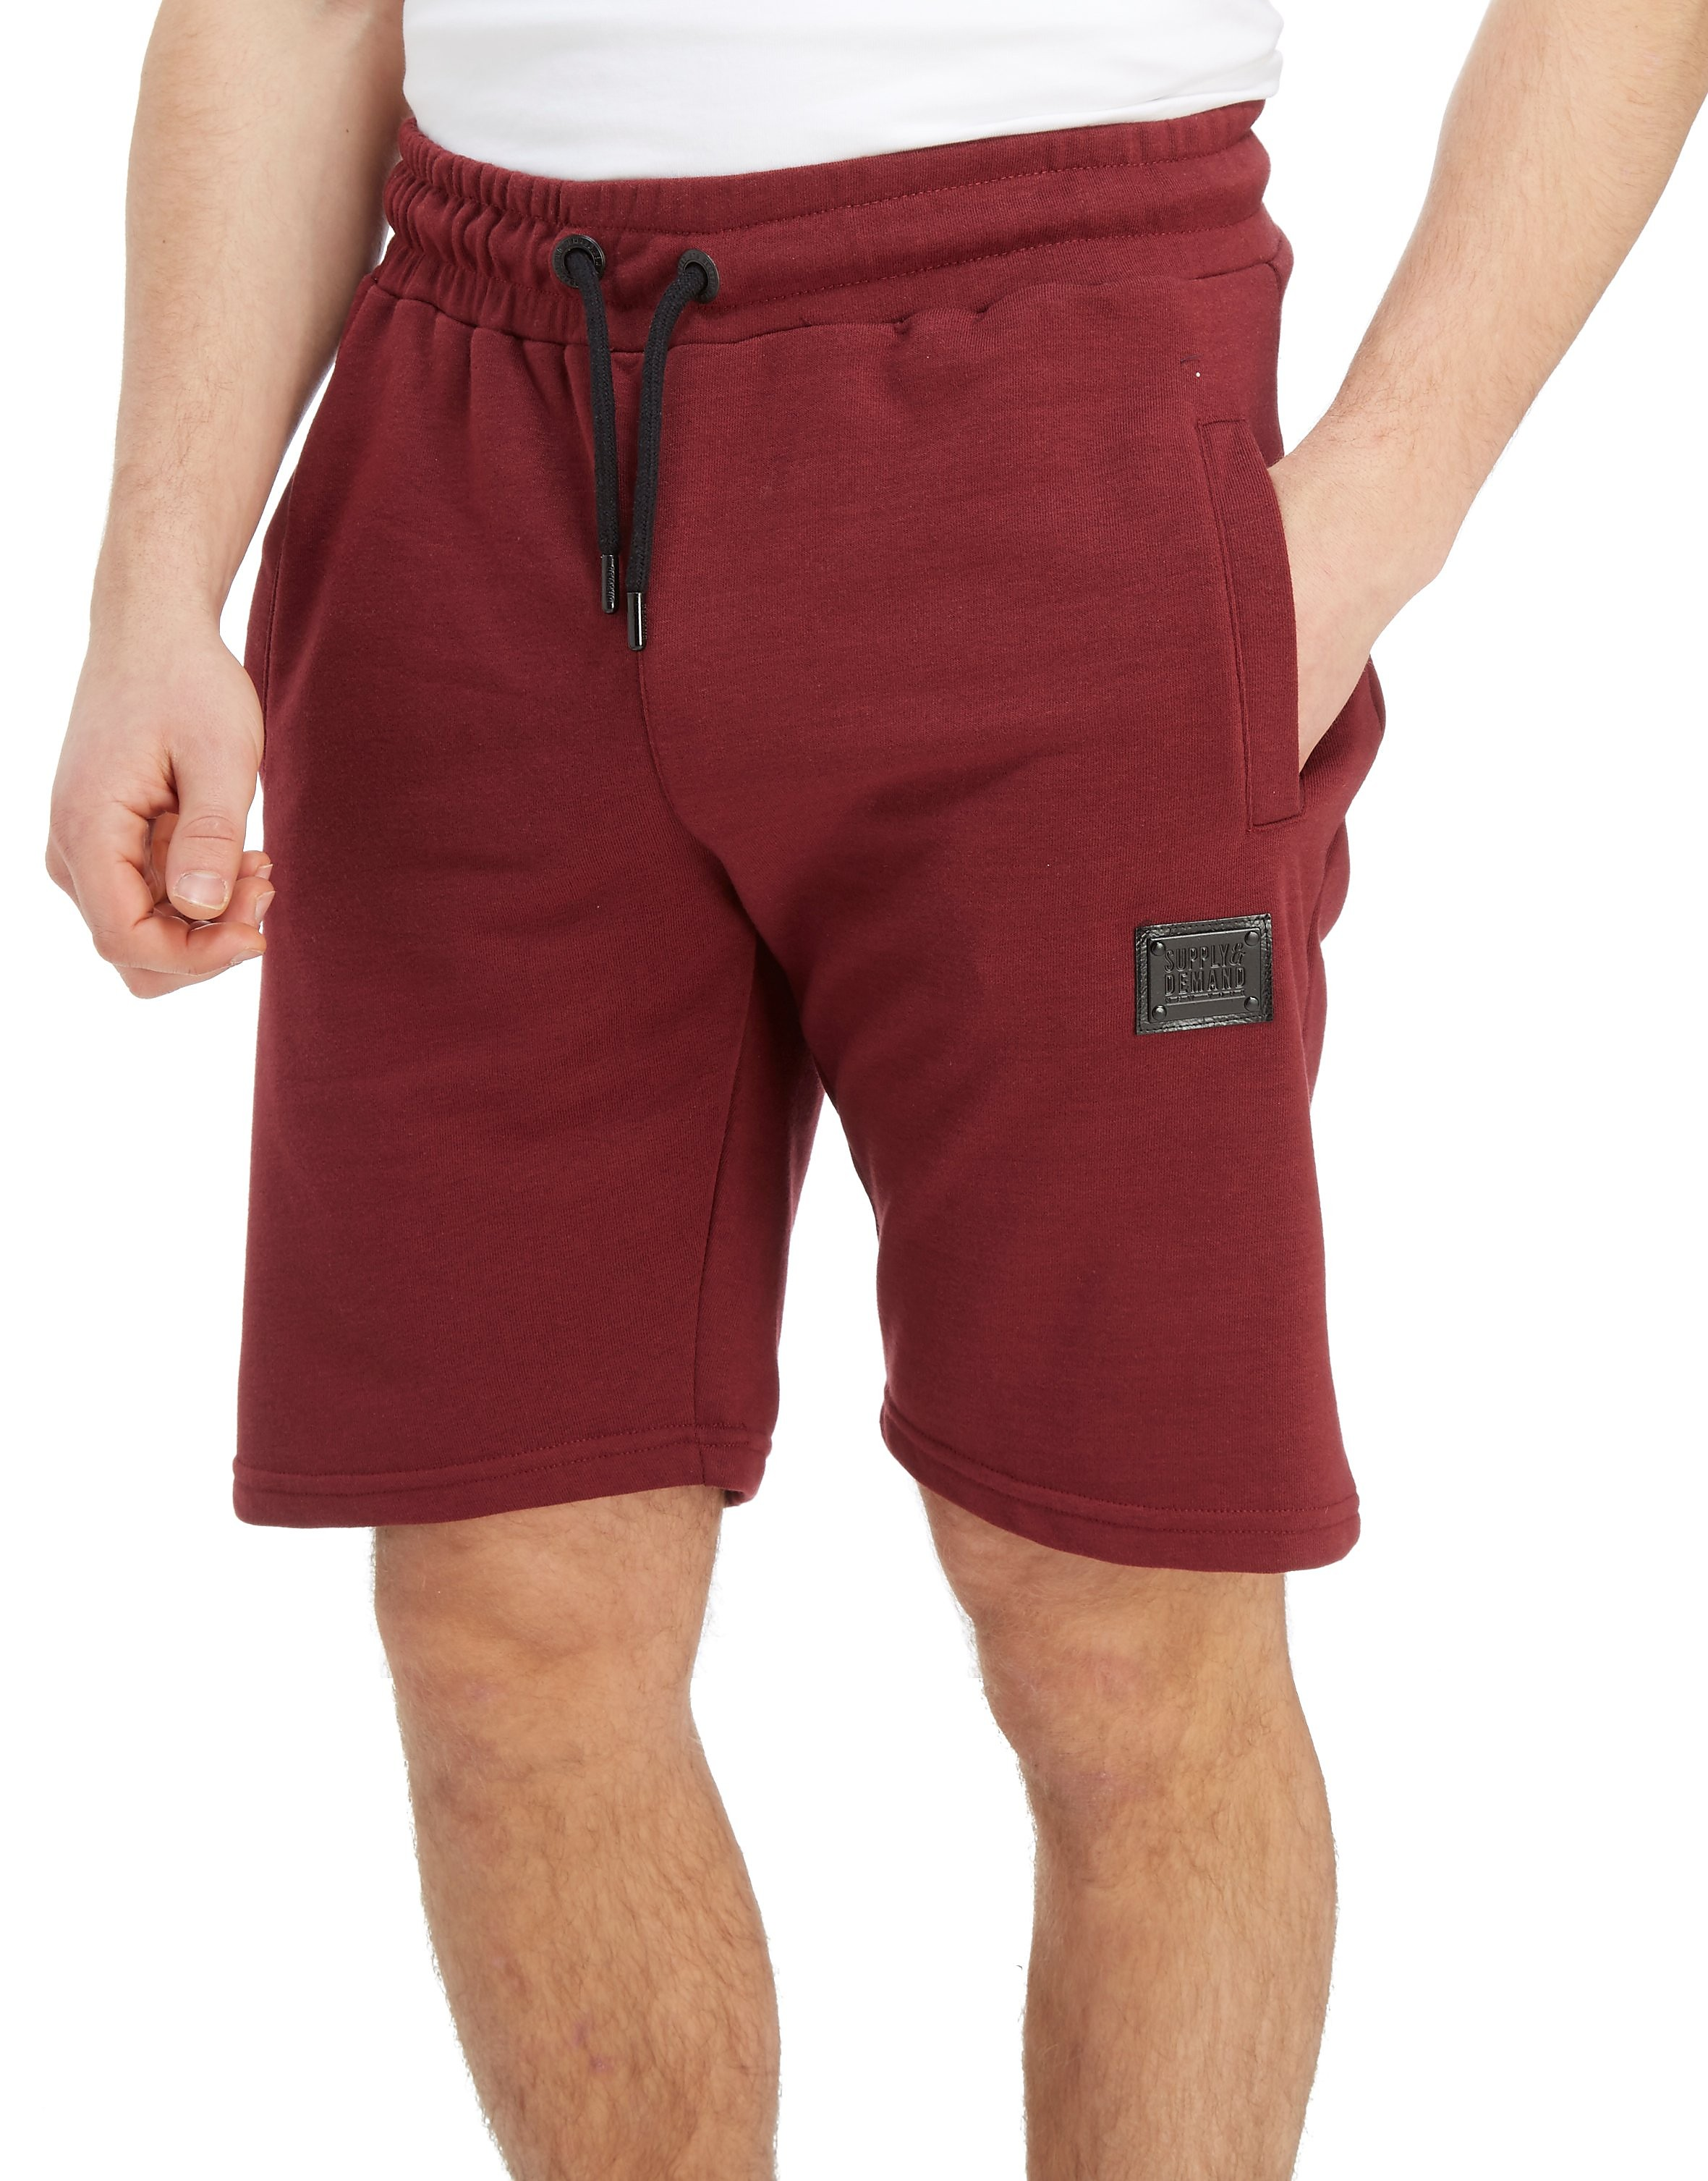 Supply & Demand Loop Shorts